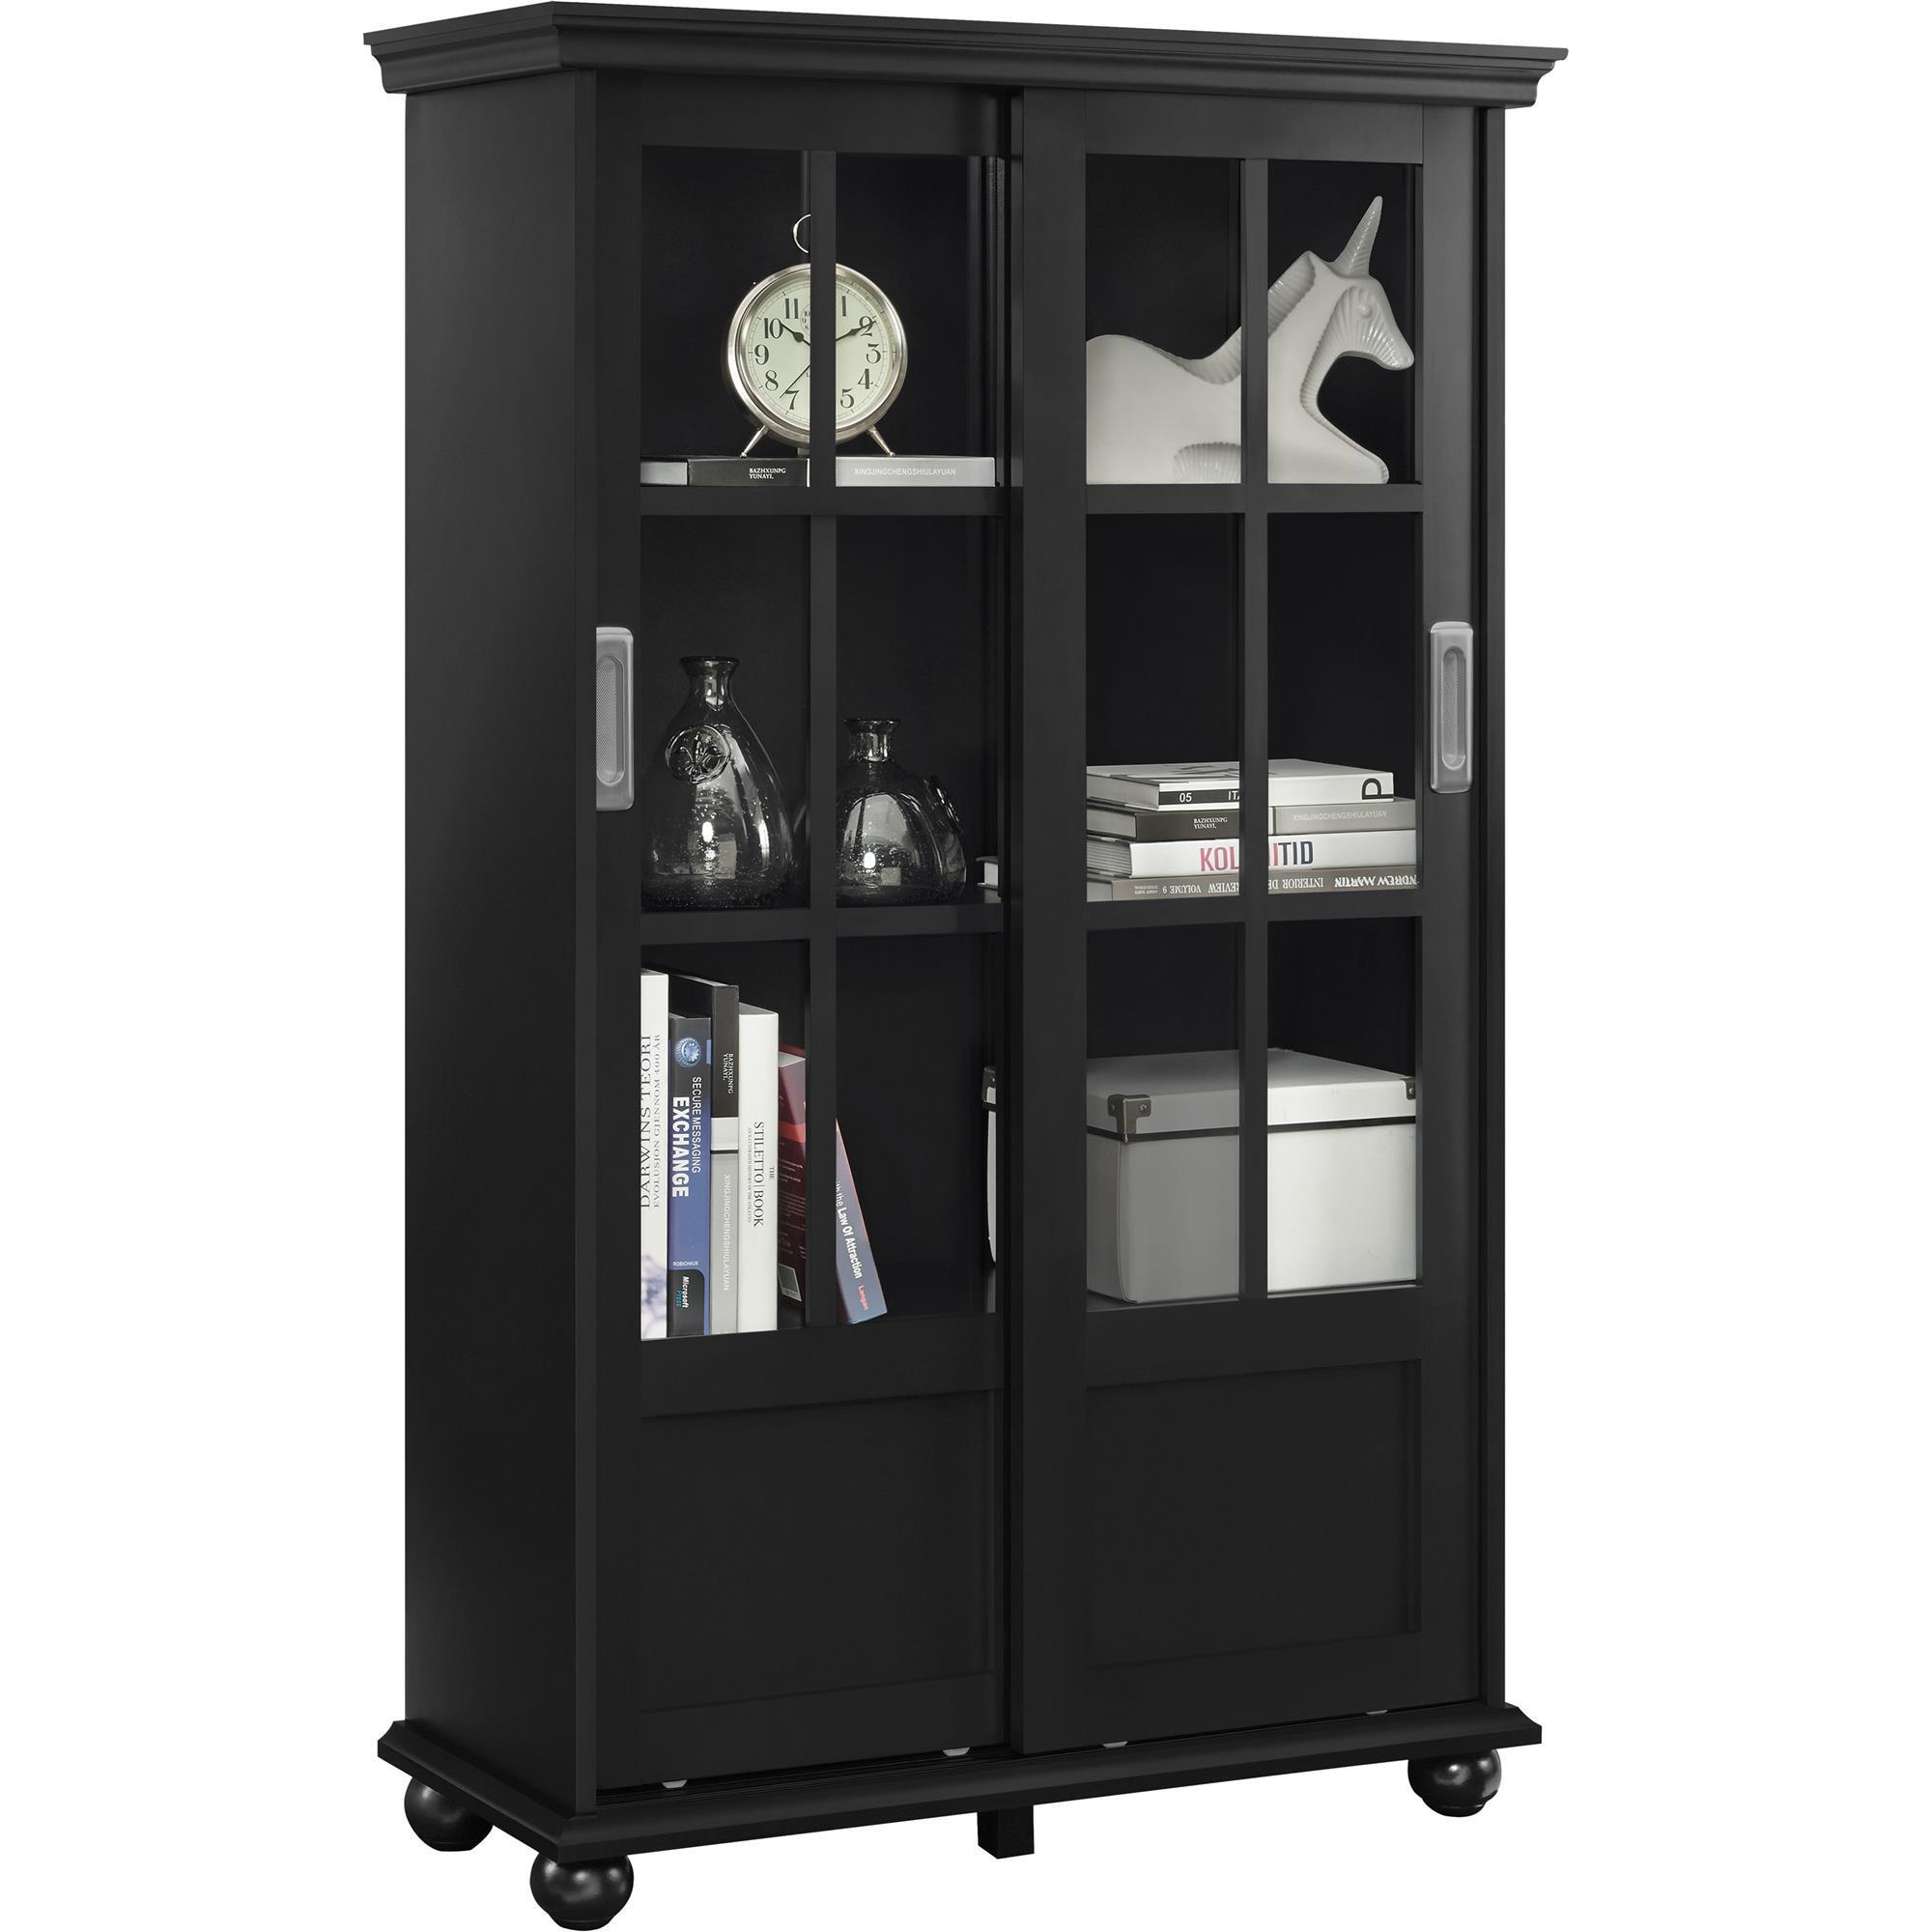 choosing biz shelf bookcase to uwzurfl themiracle all bookshelf black know needed finishes you ideas multiple about orion small a with leaning source door glass doors